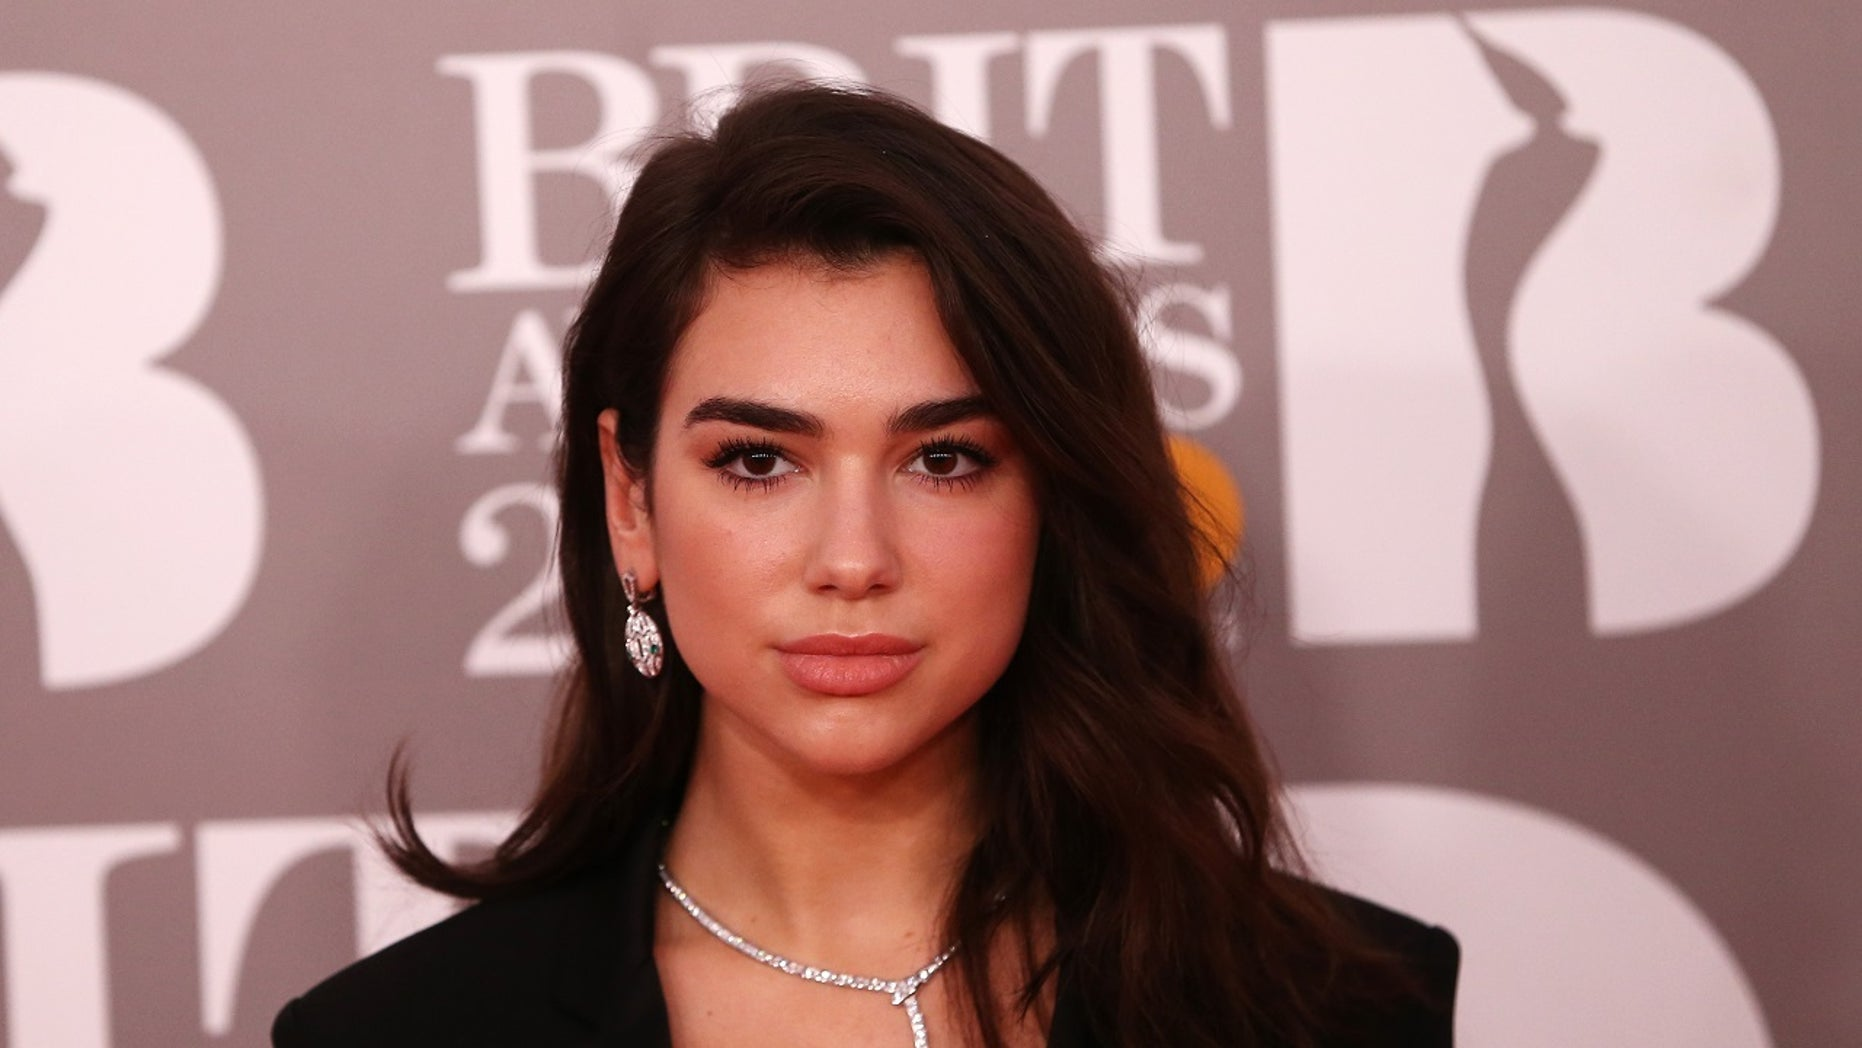 Singer Dua Lipa is confirmed to wear a white rose at the Grammys.